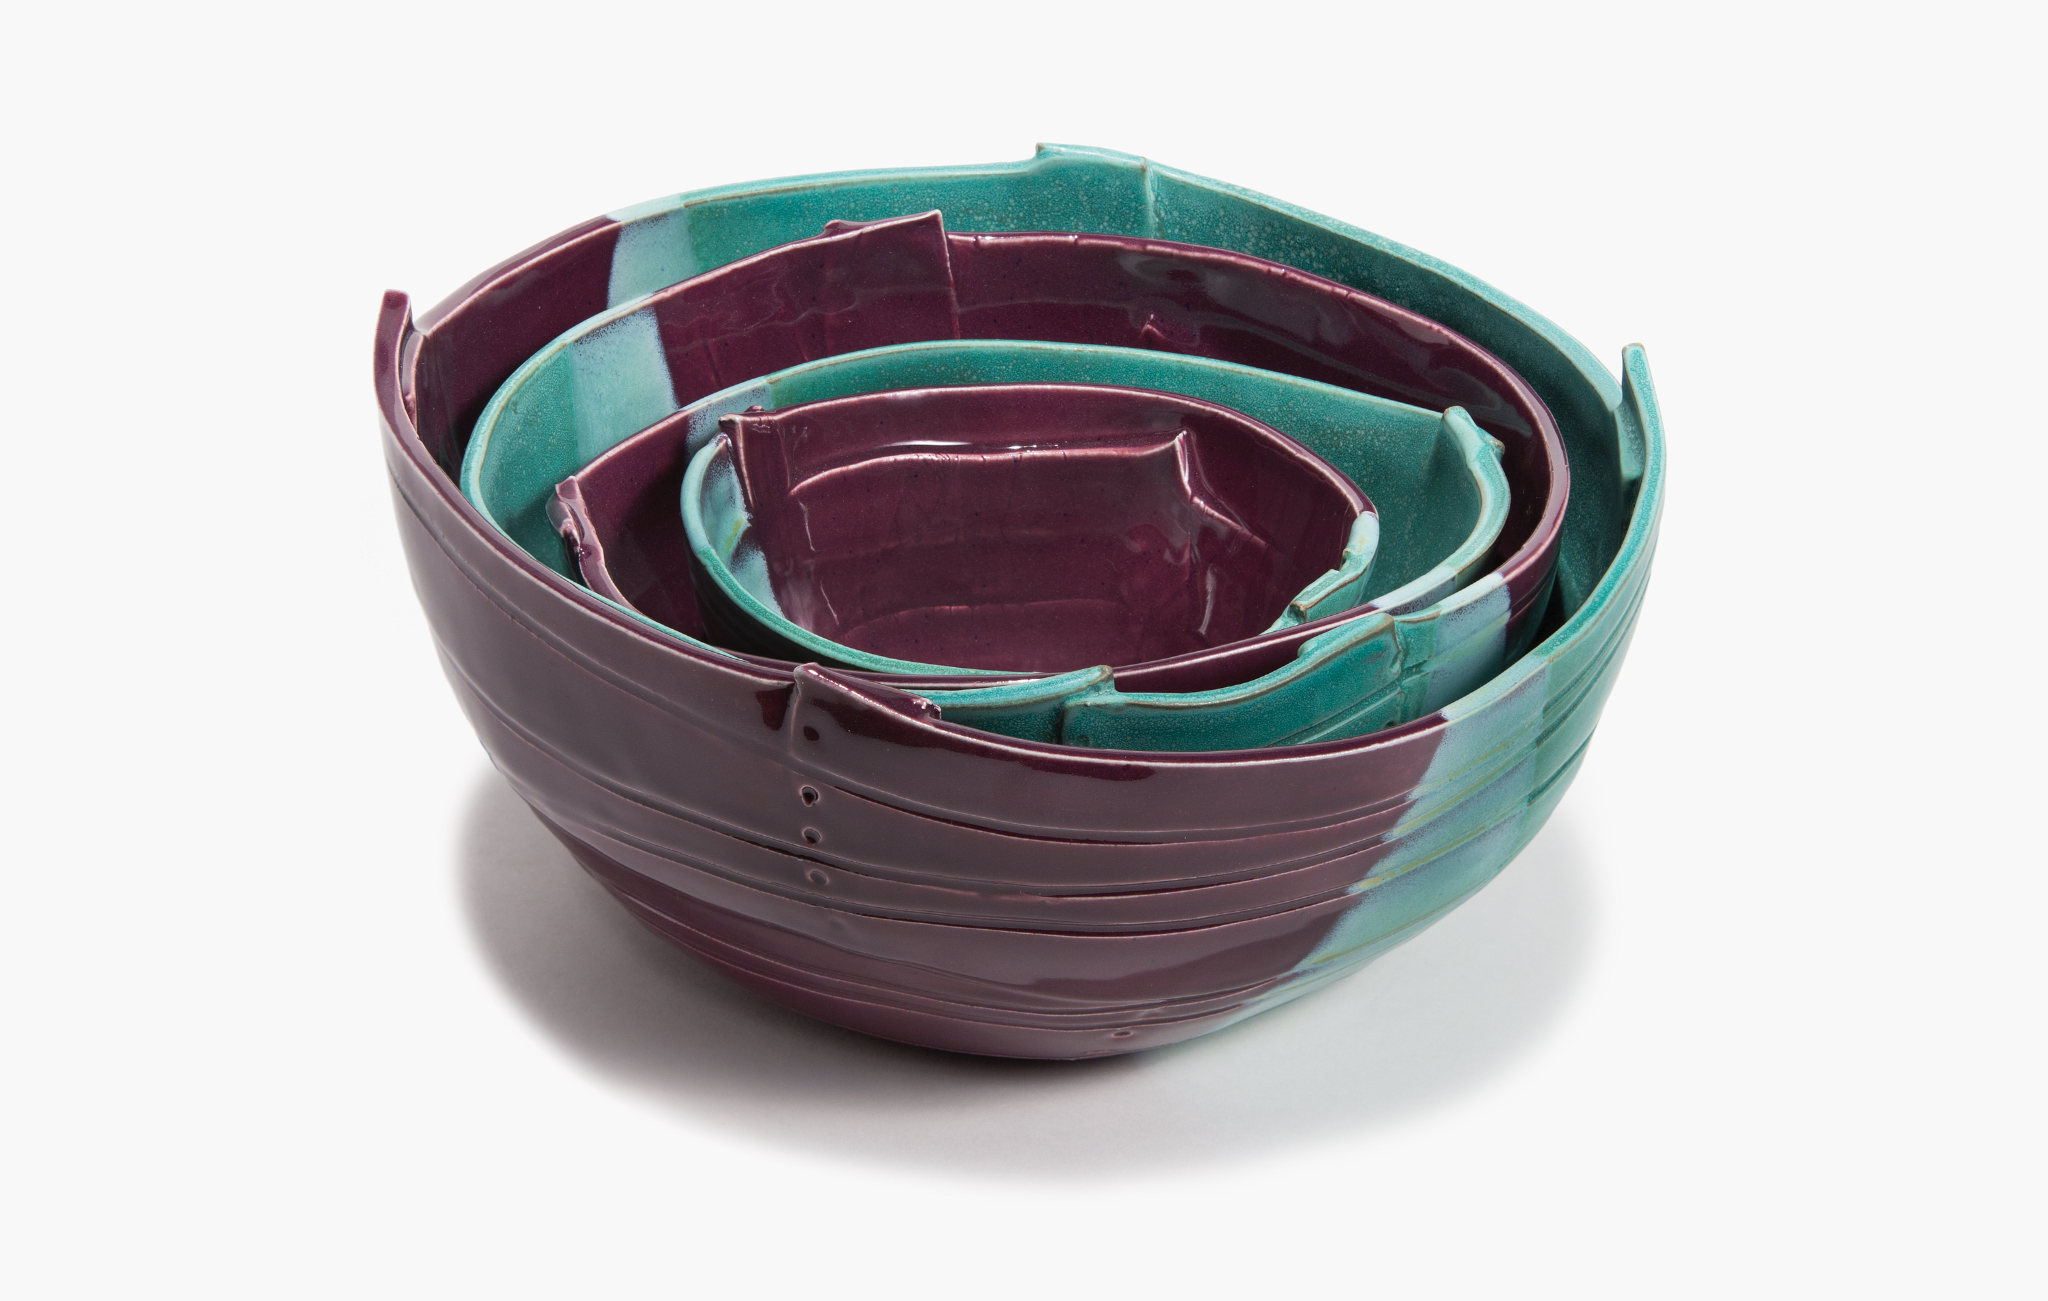 Nesting Bowls in Teal and Plum